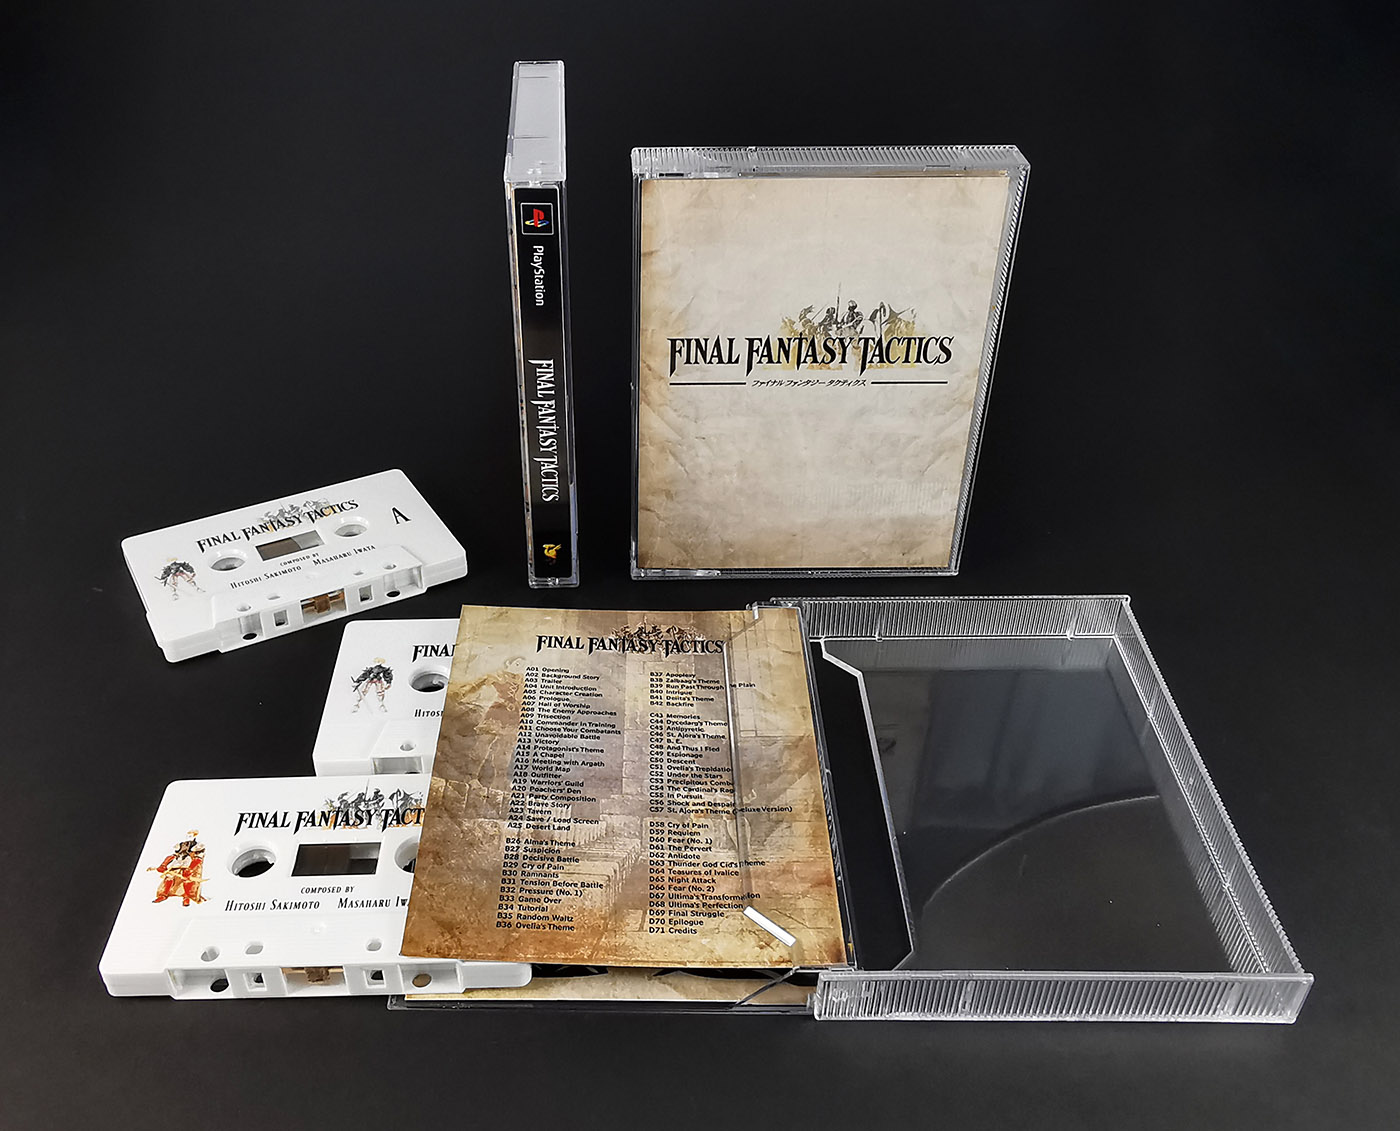 Final Fantasy Tactics double cassette tape set in our tall double stacked tape cases